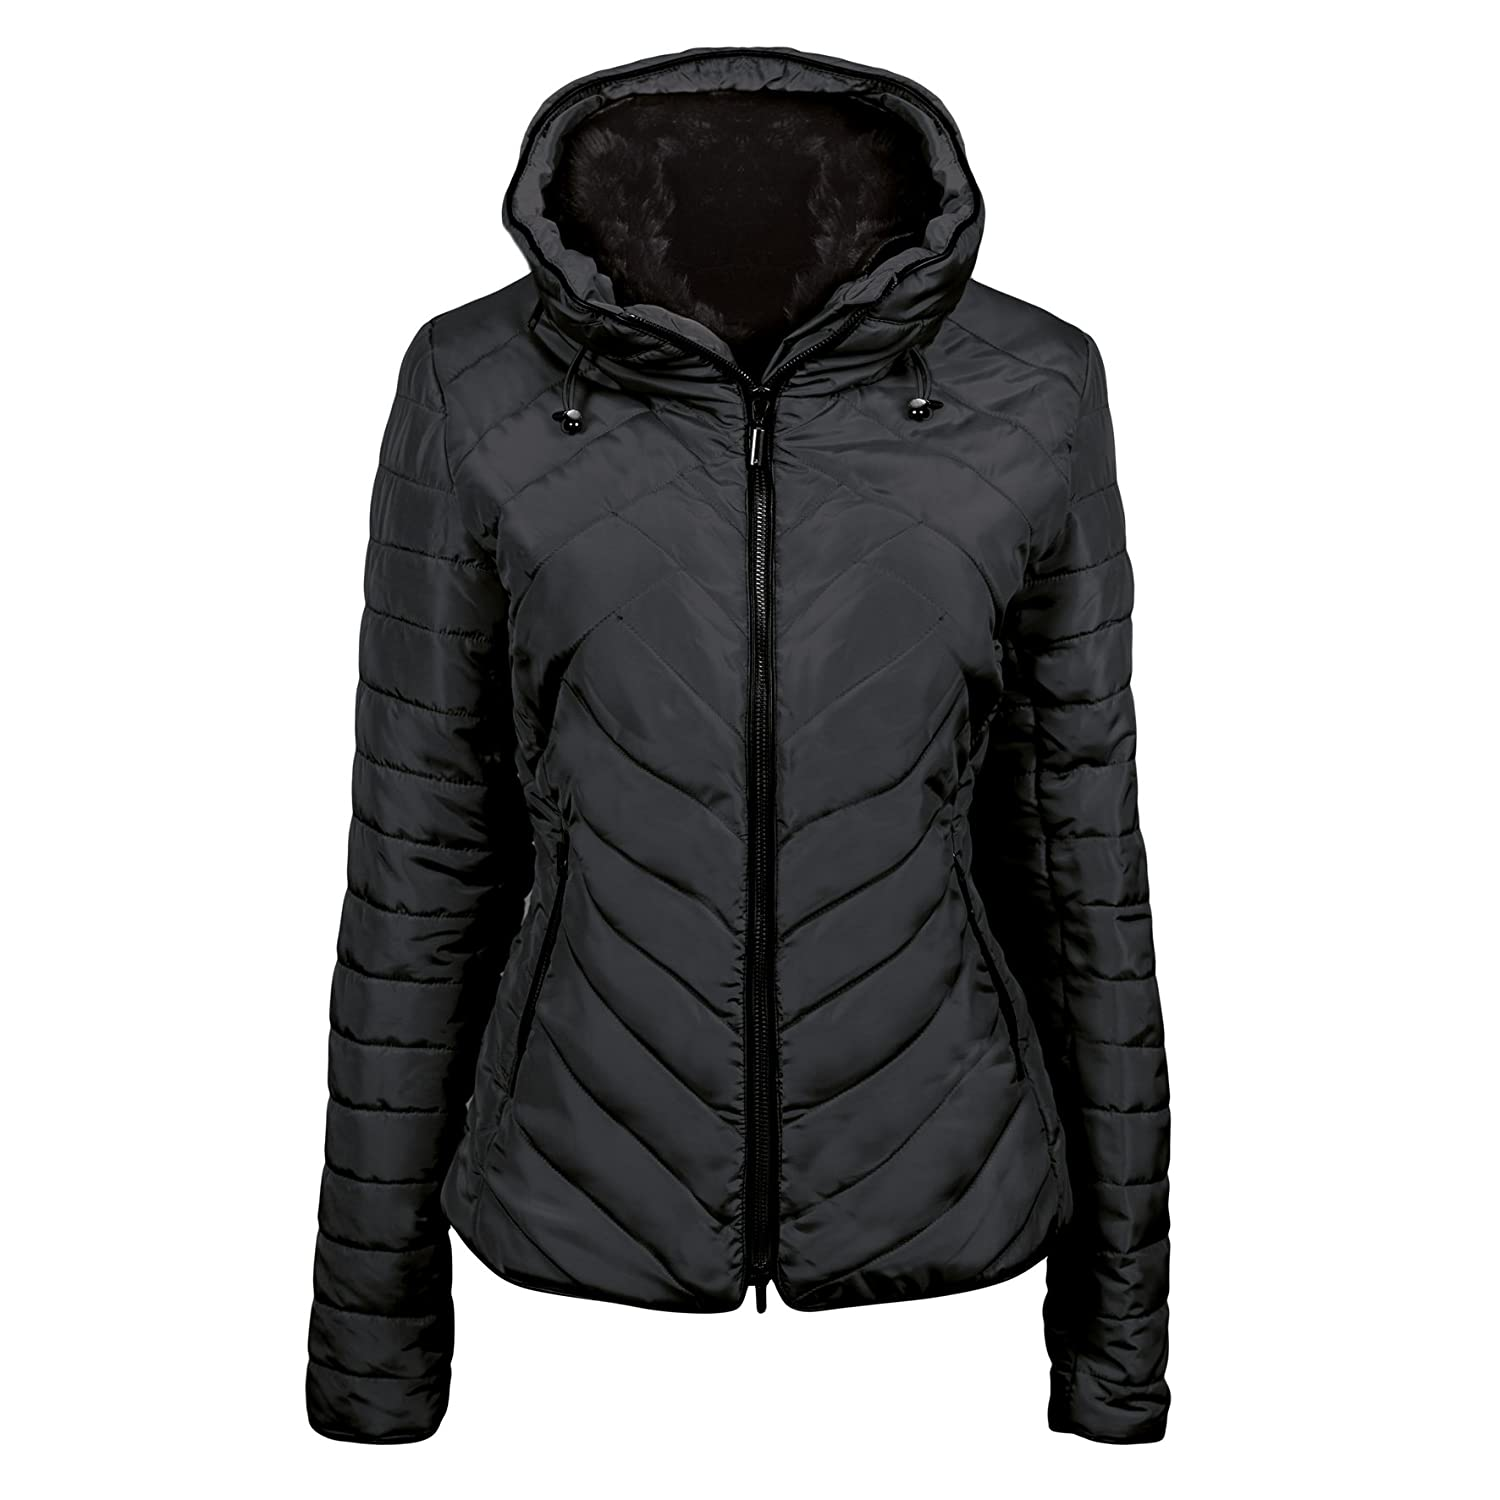 Winterjacke Cherry (38): : Sport & Freizeit